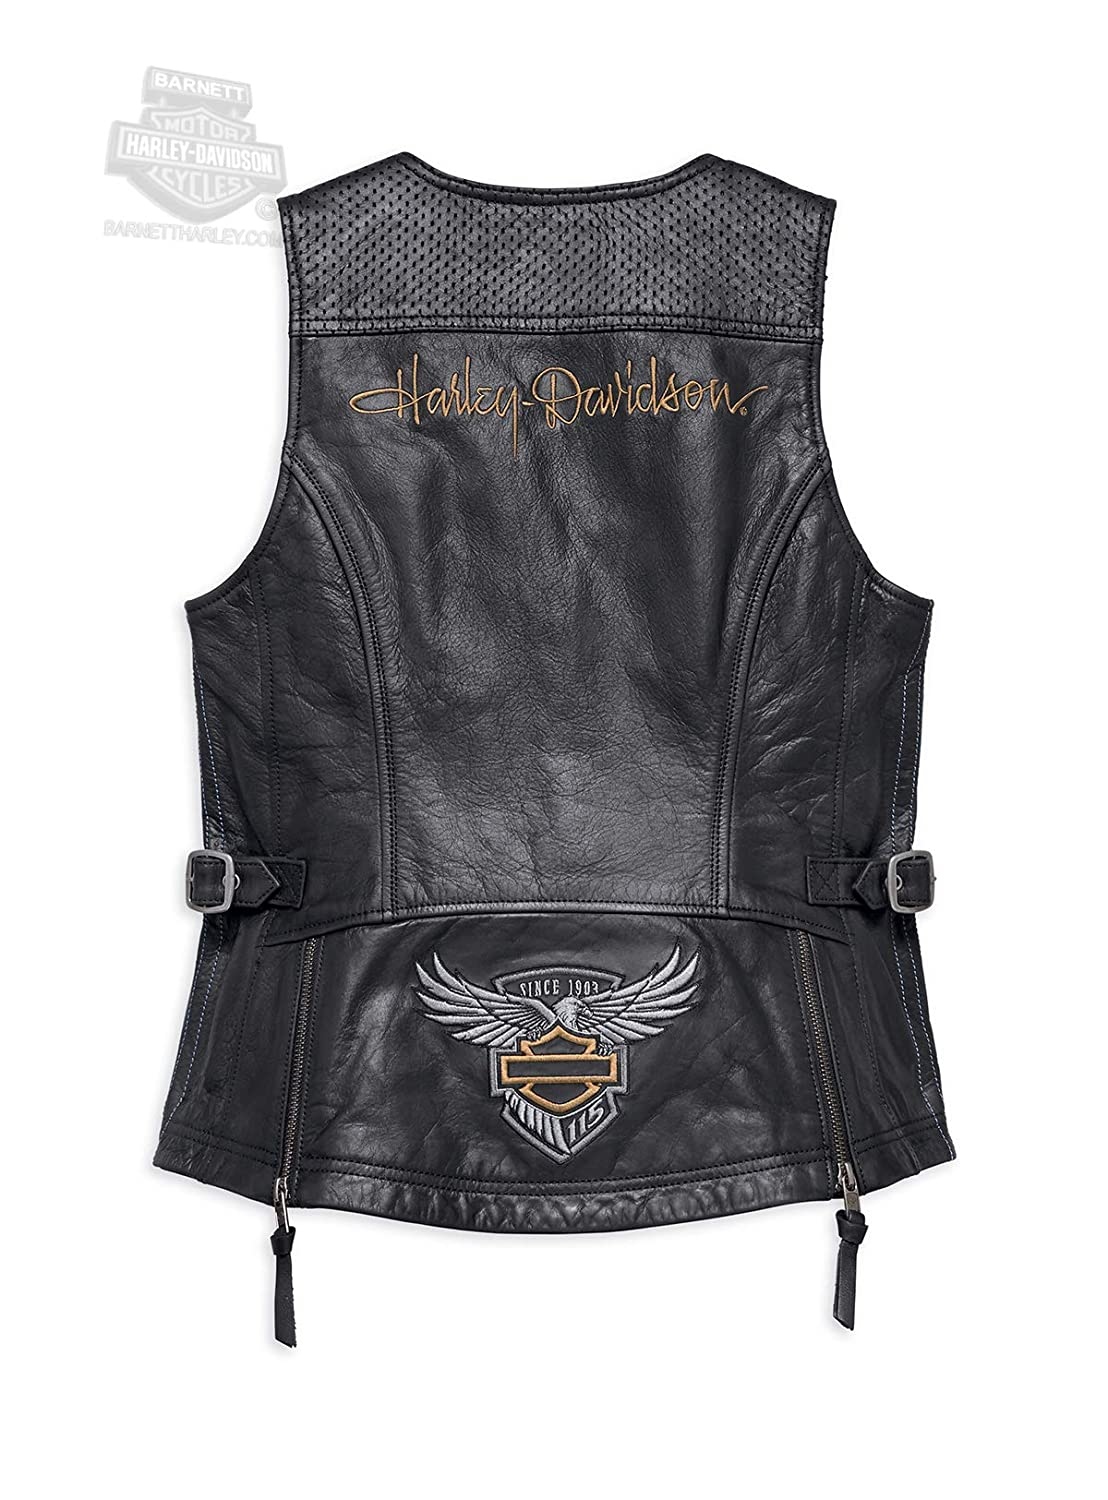 49900b188233 Harley-Davidson Womens 115th Anniversary Perforated Accent Black Vest 98011- 18VW at Amazon Women s Coats Shop